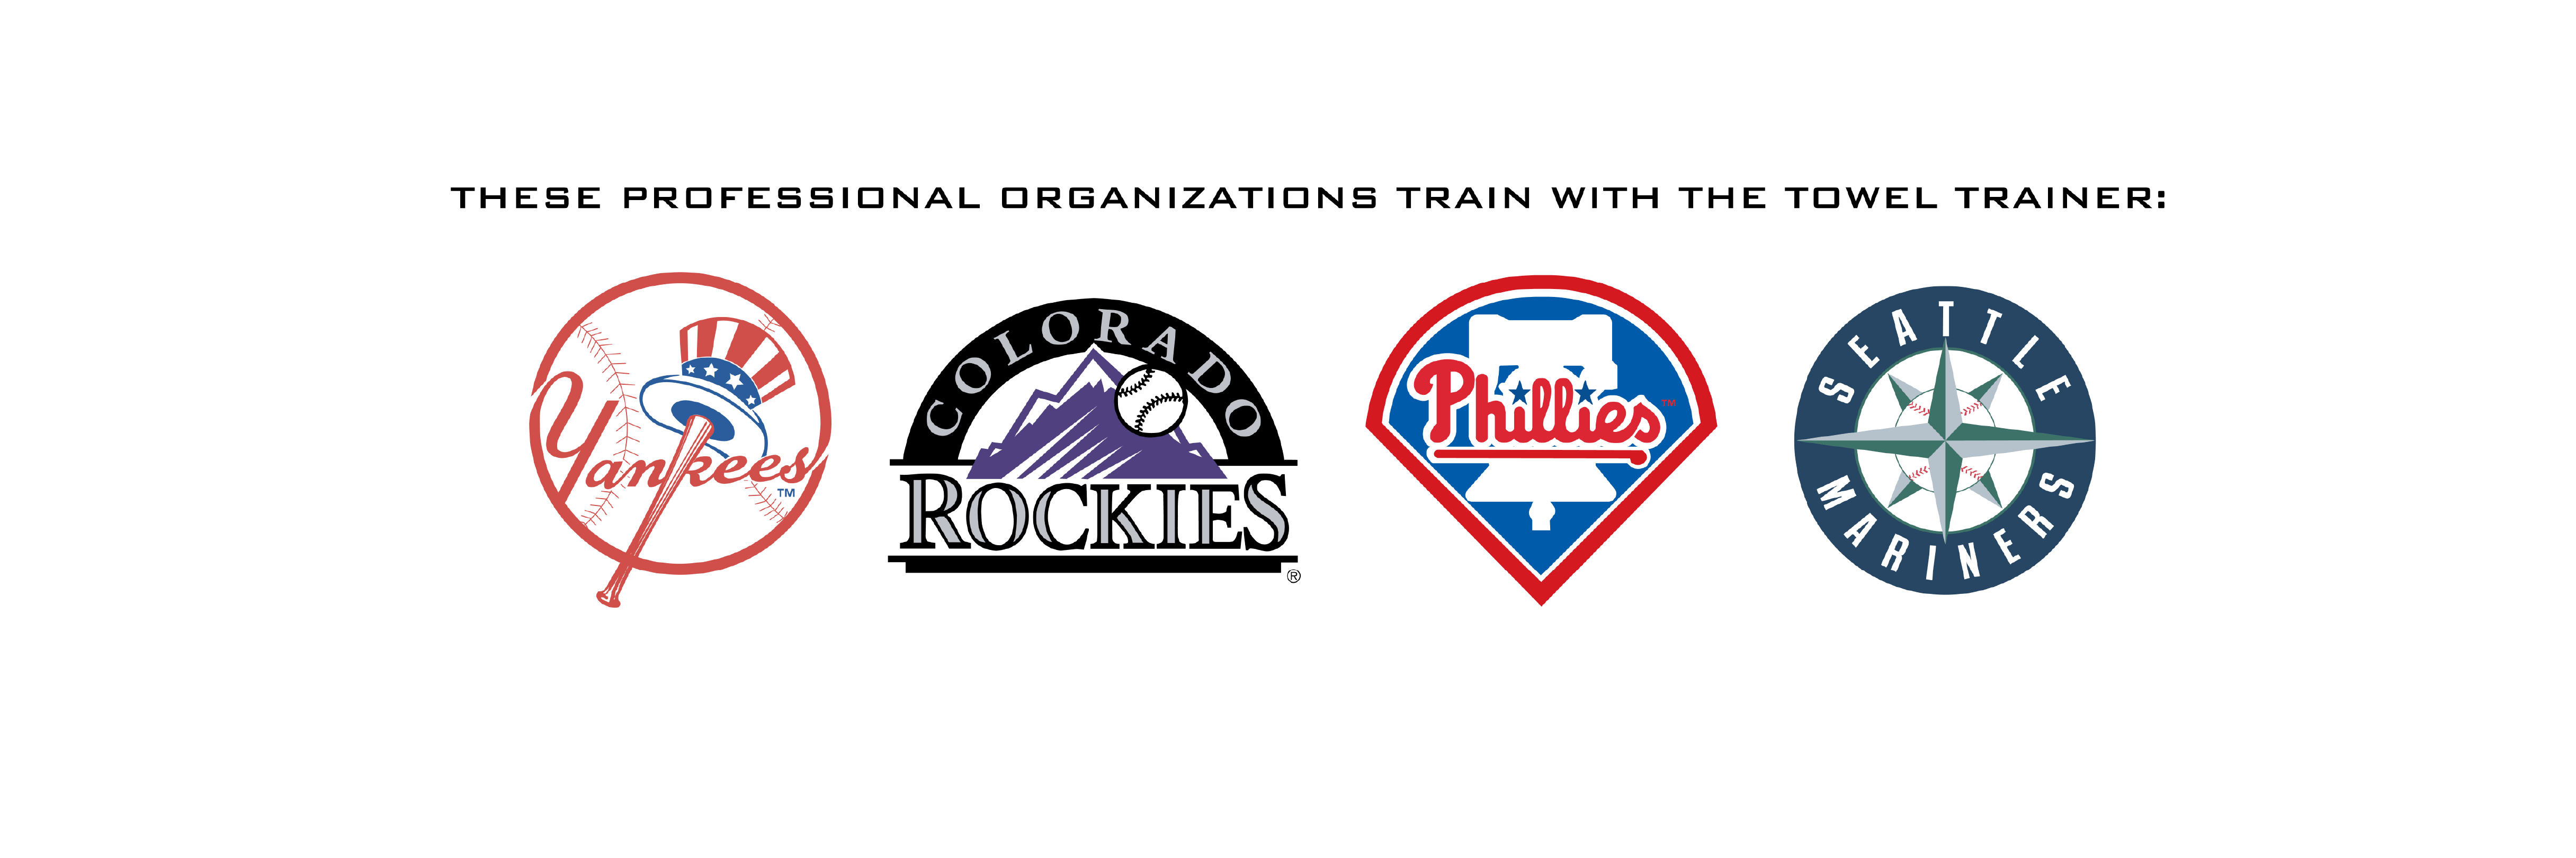 New York Yankees Colorado Rockies Philadelphia Phillies Seattle Mariners Train with the Towel Trainer for Towel Drills